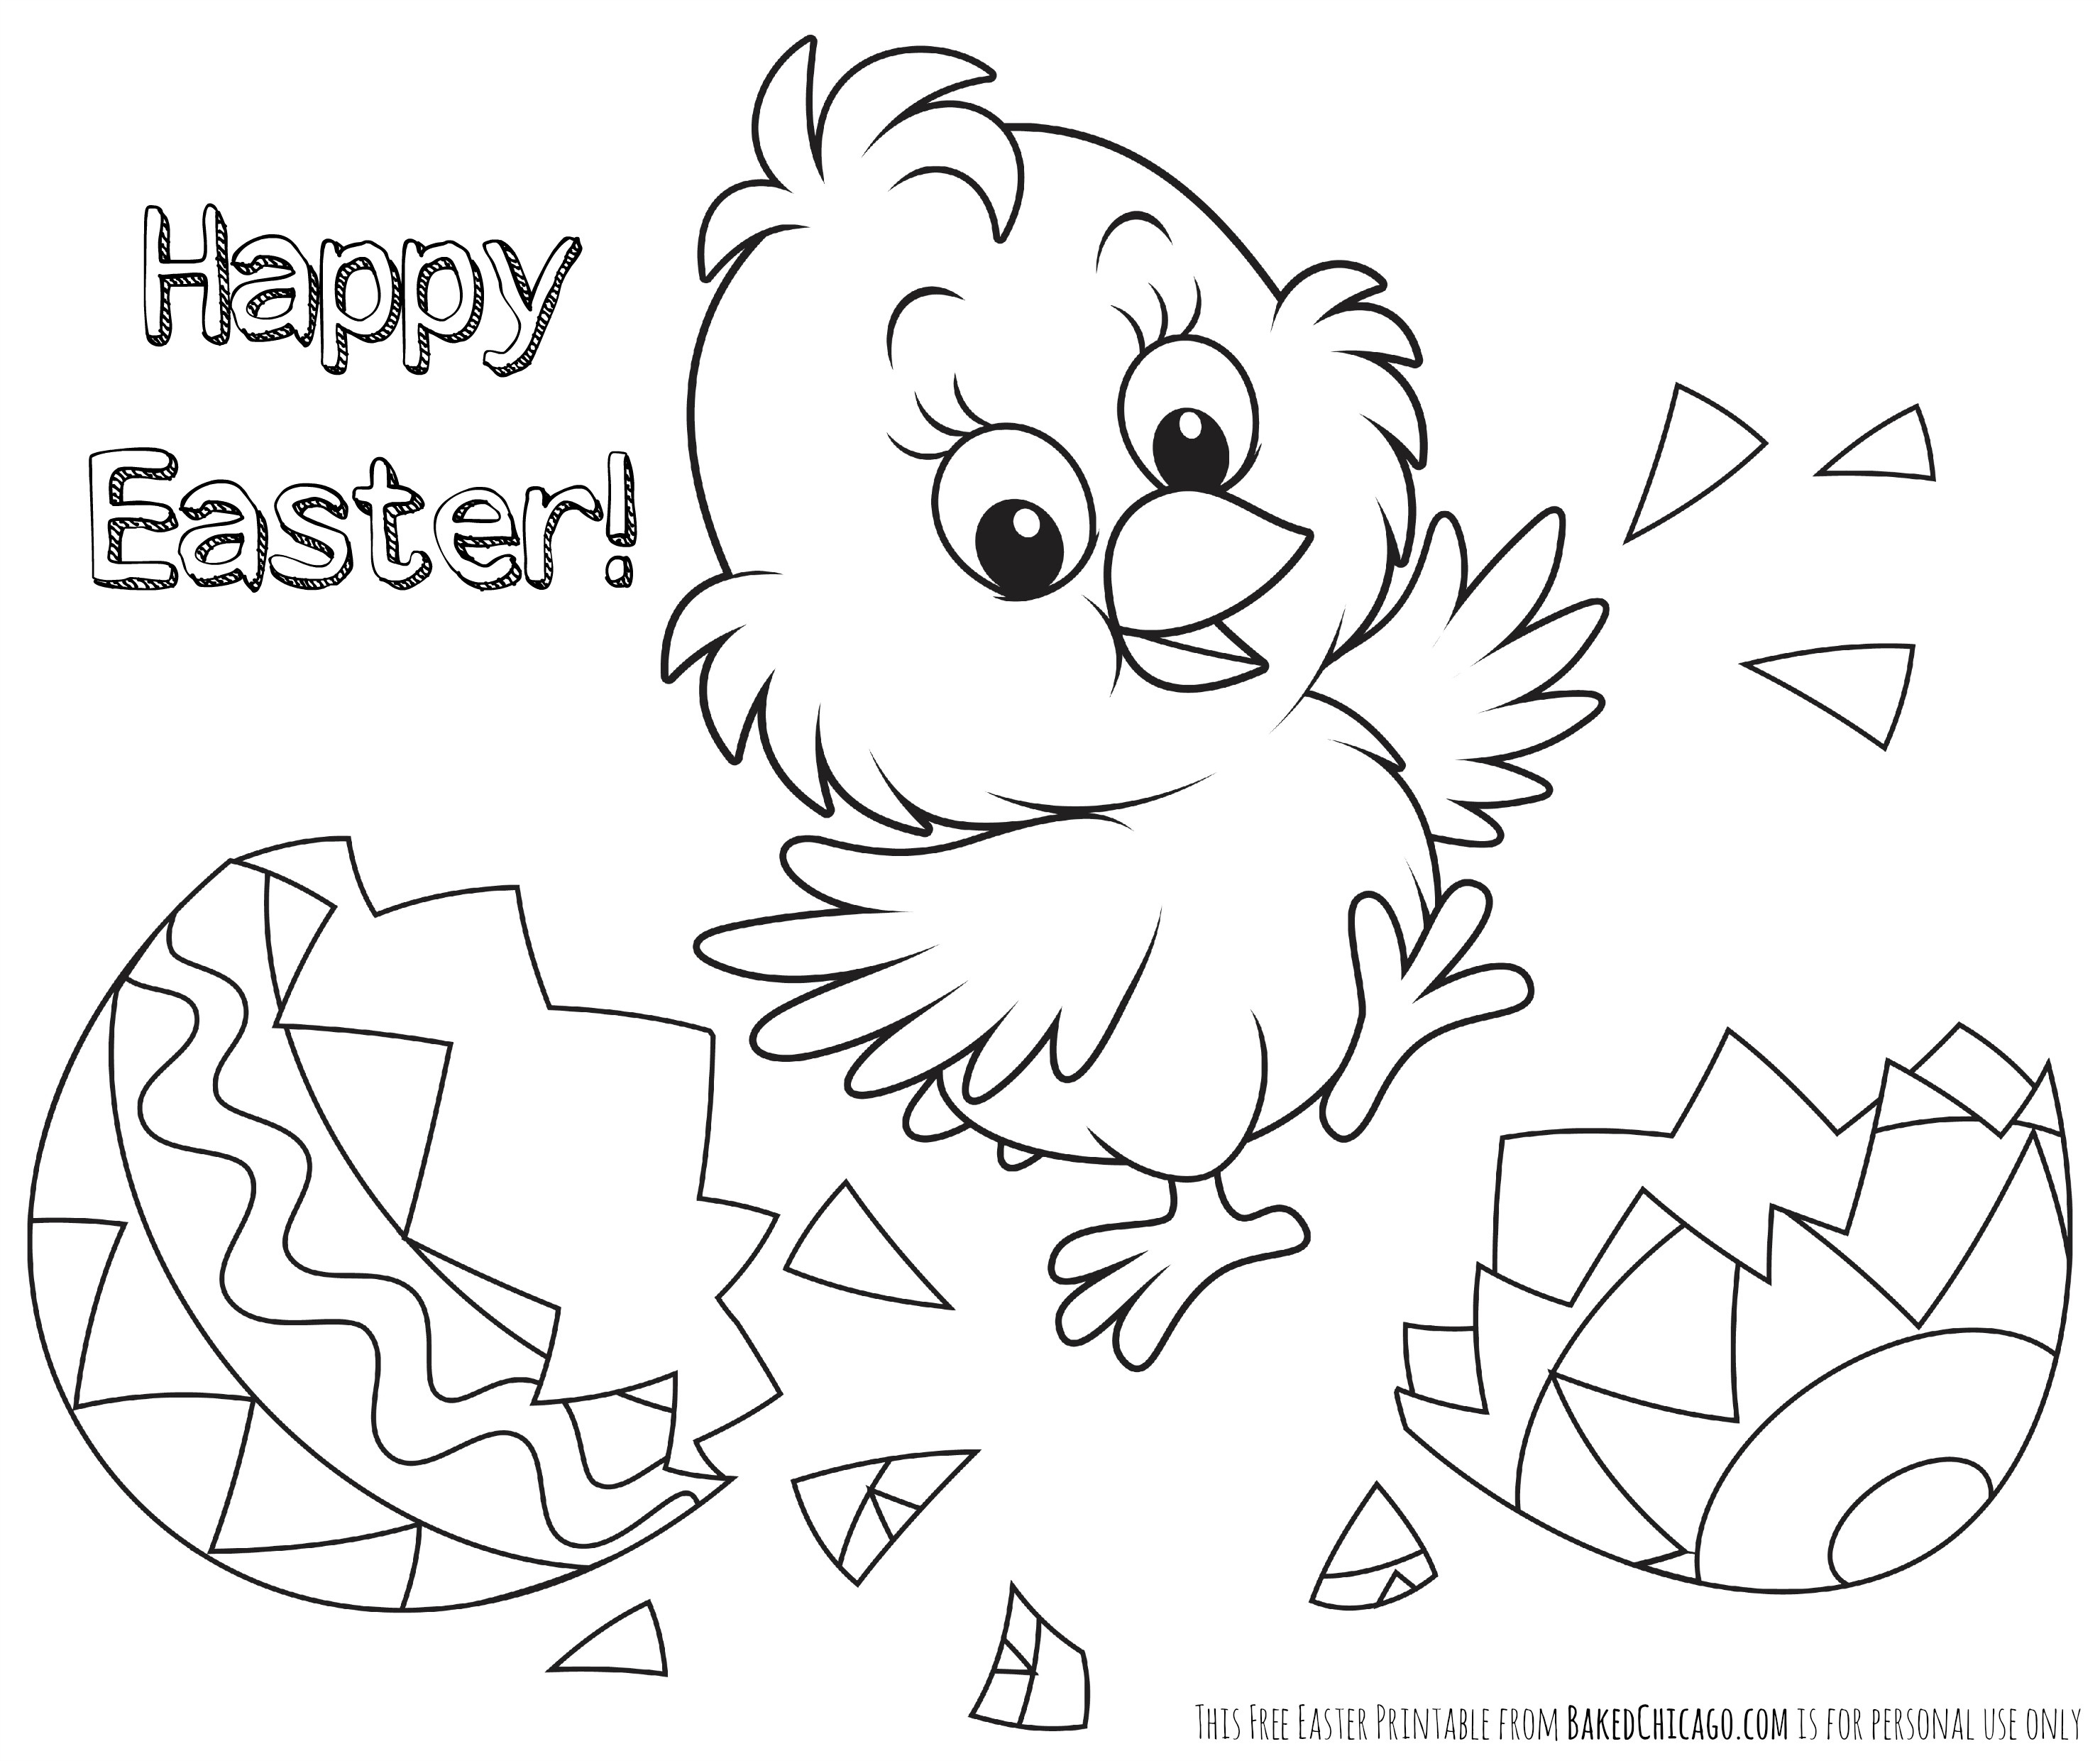 Coloring Pages : Free Easter Coloringes For Kidsfree To Print - Free Printable Easter Images